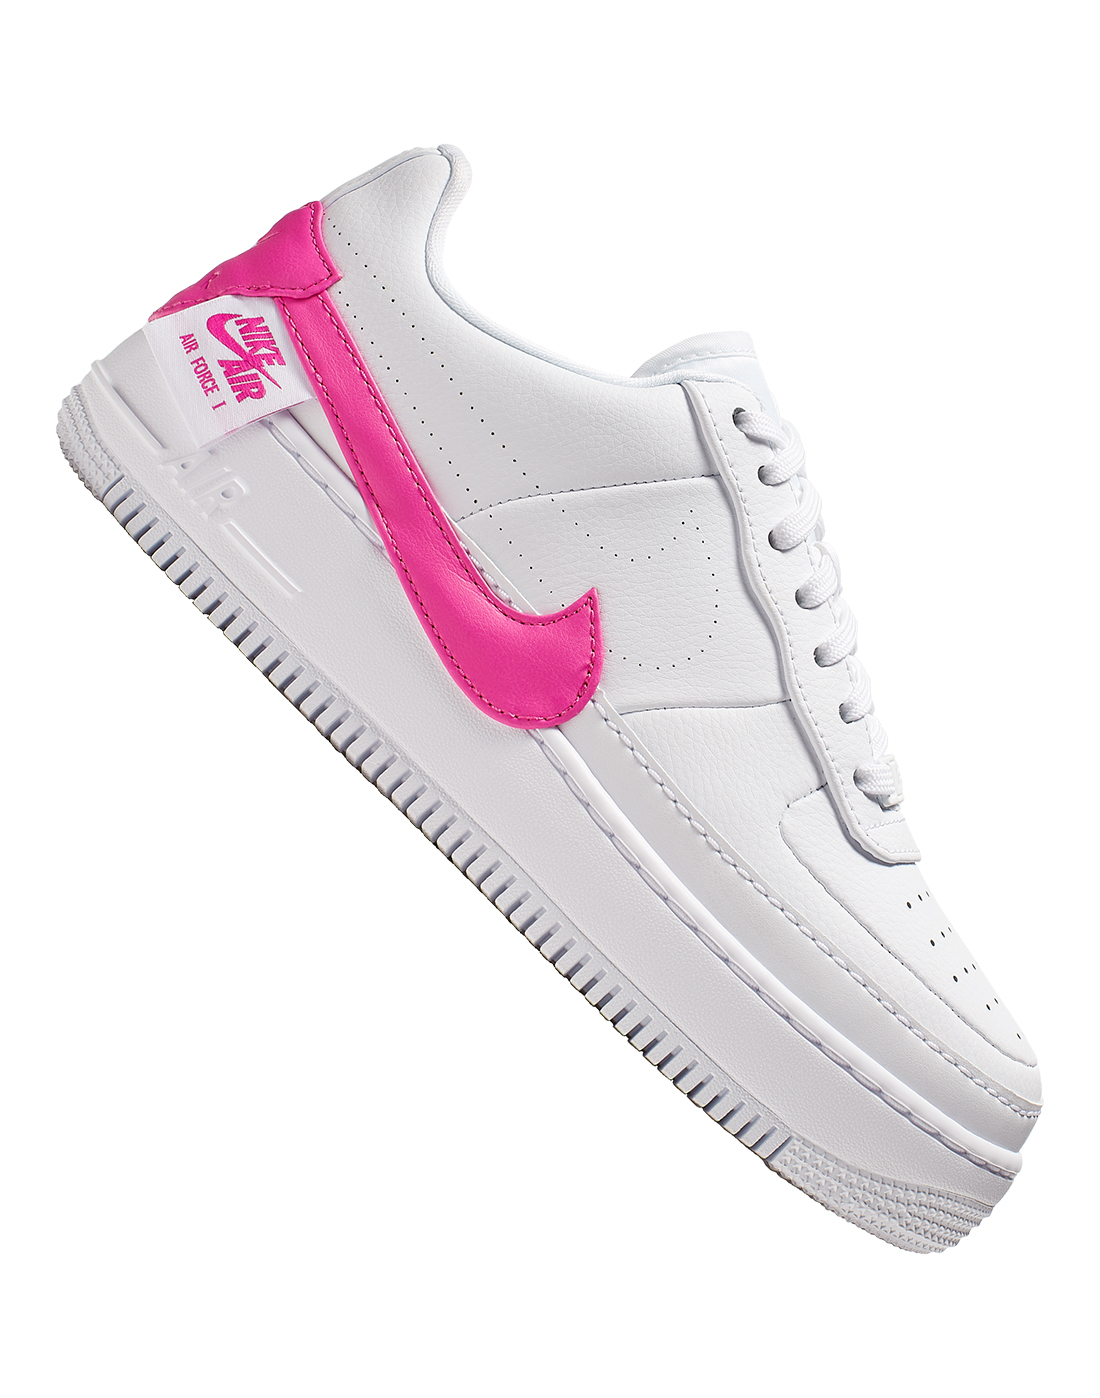 new arrival 37ce7 8f025 Womens Air Force 1 Jester XX